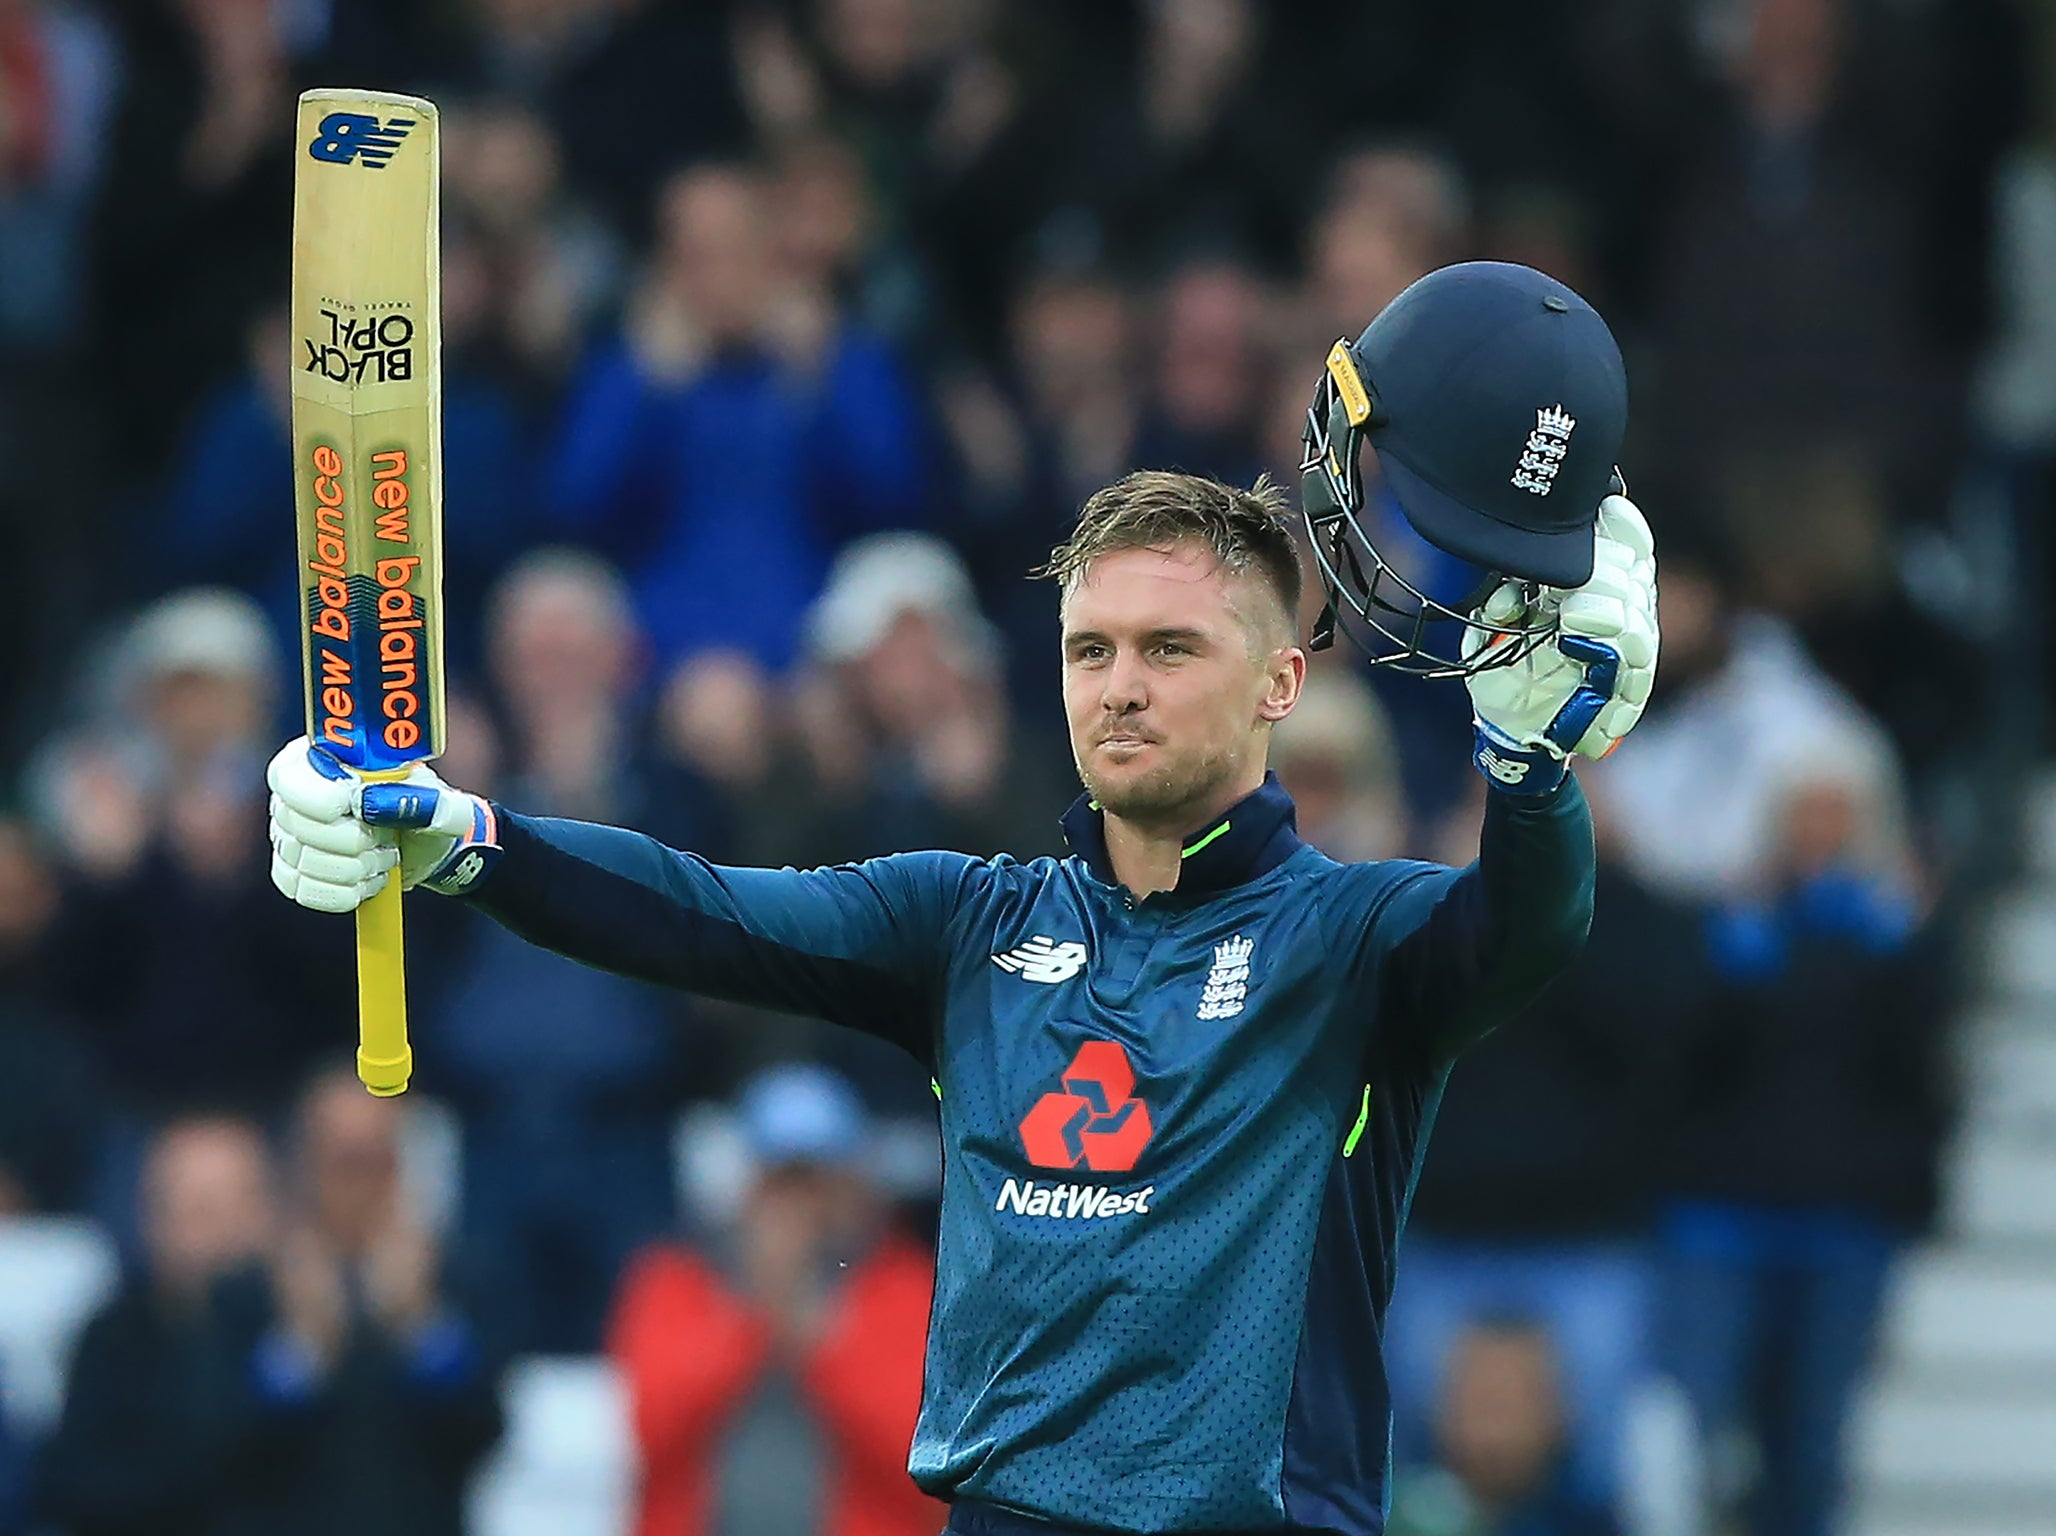 Cricket World Cup 2019 results: Full schedule and scores from every